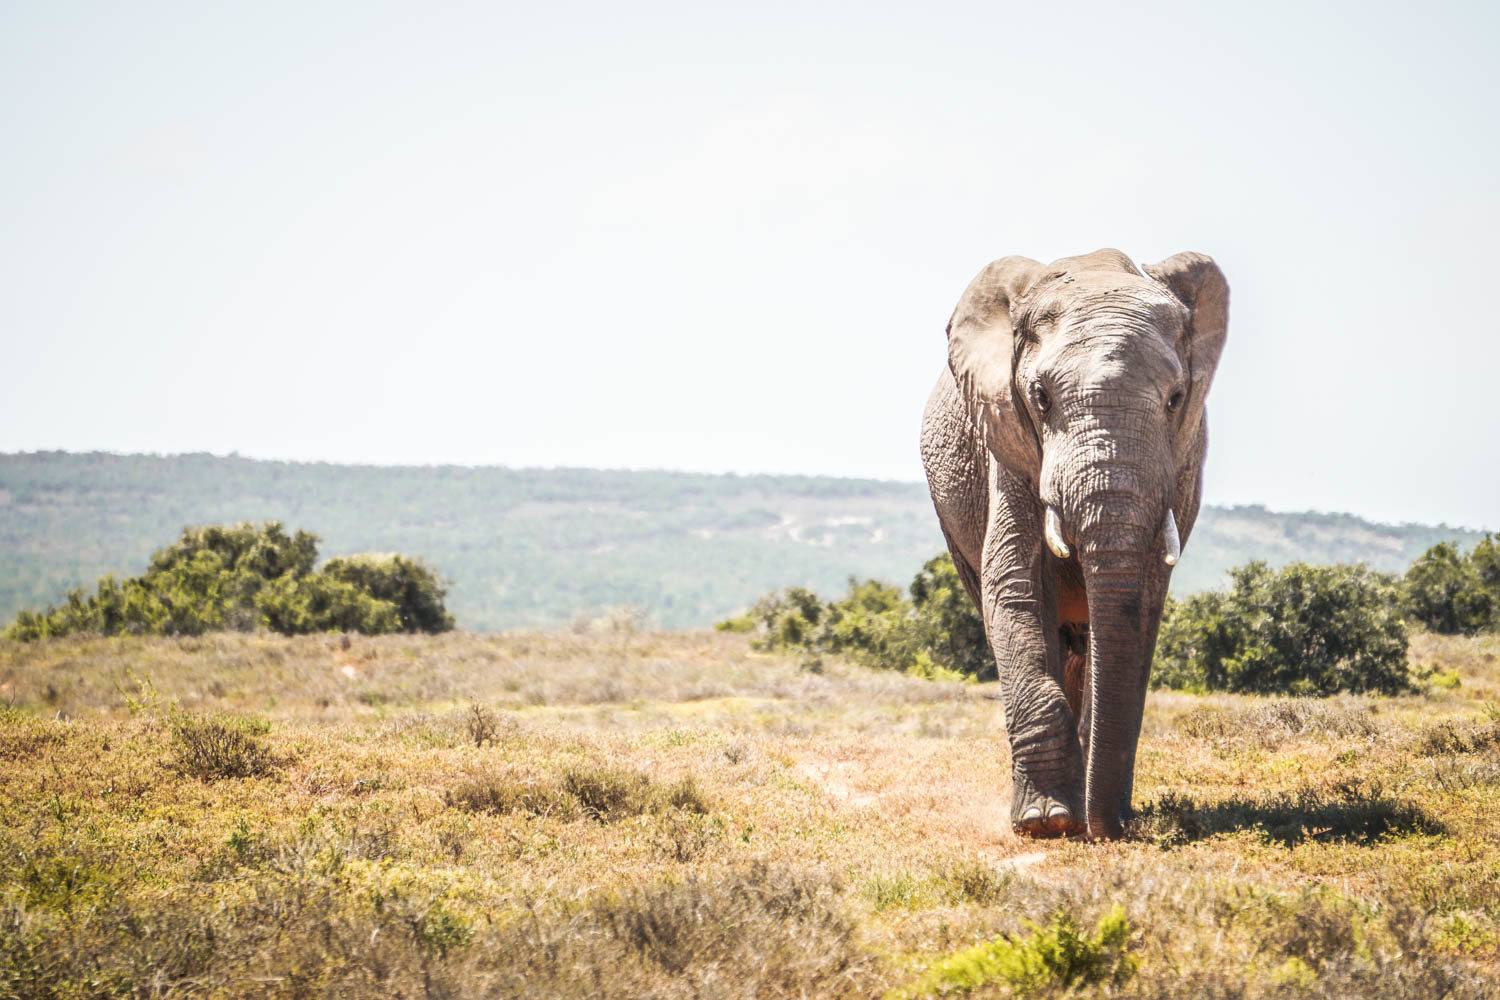 Walking Elephant at Addo National Park